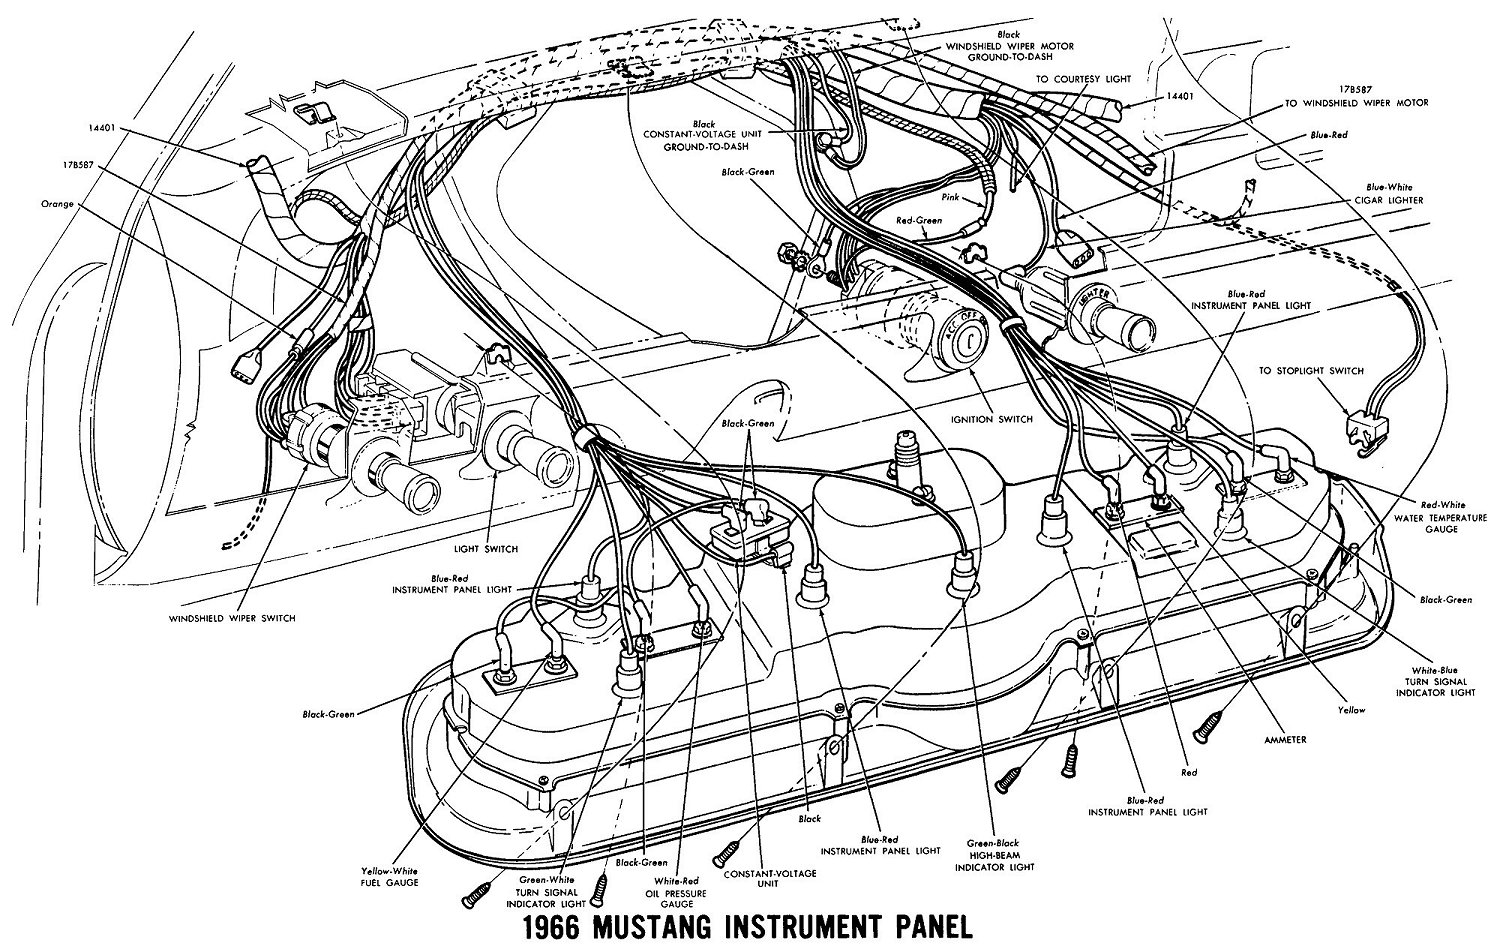 66instr 1966 mustang wiring diagrams average joe restoration 1966 mustang engine wire harness at bakdesigns.co